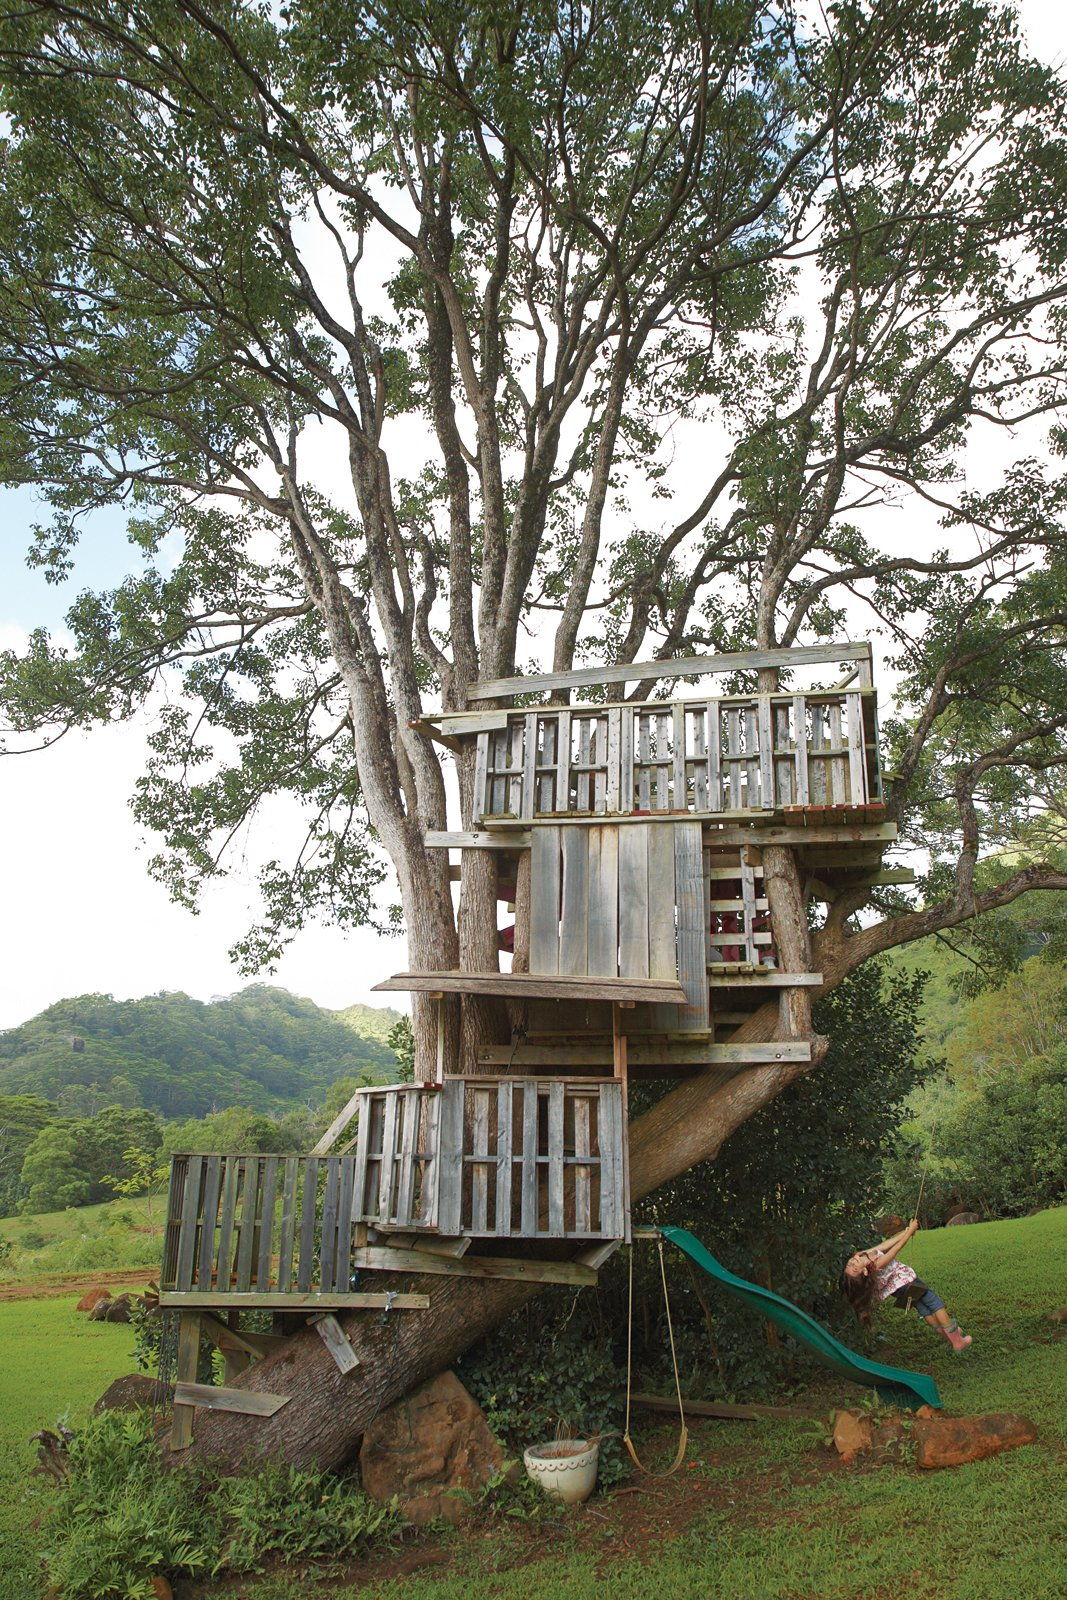 Cabins & Hideouts from Grateful Shed